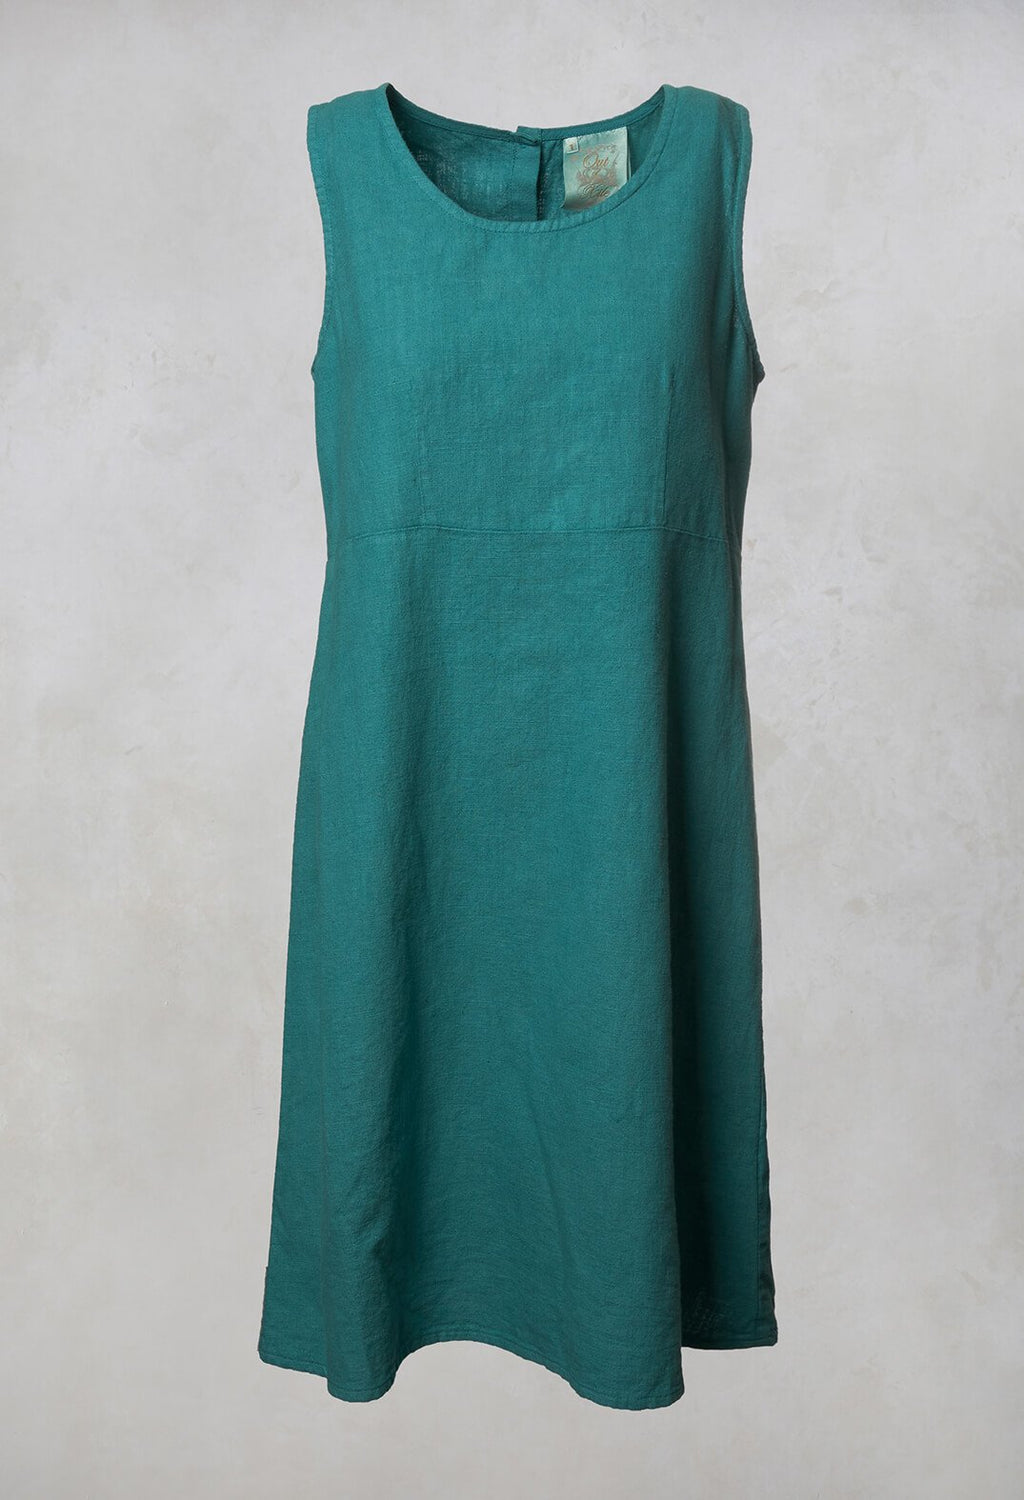 Linen Button Back Dress in Teal